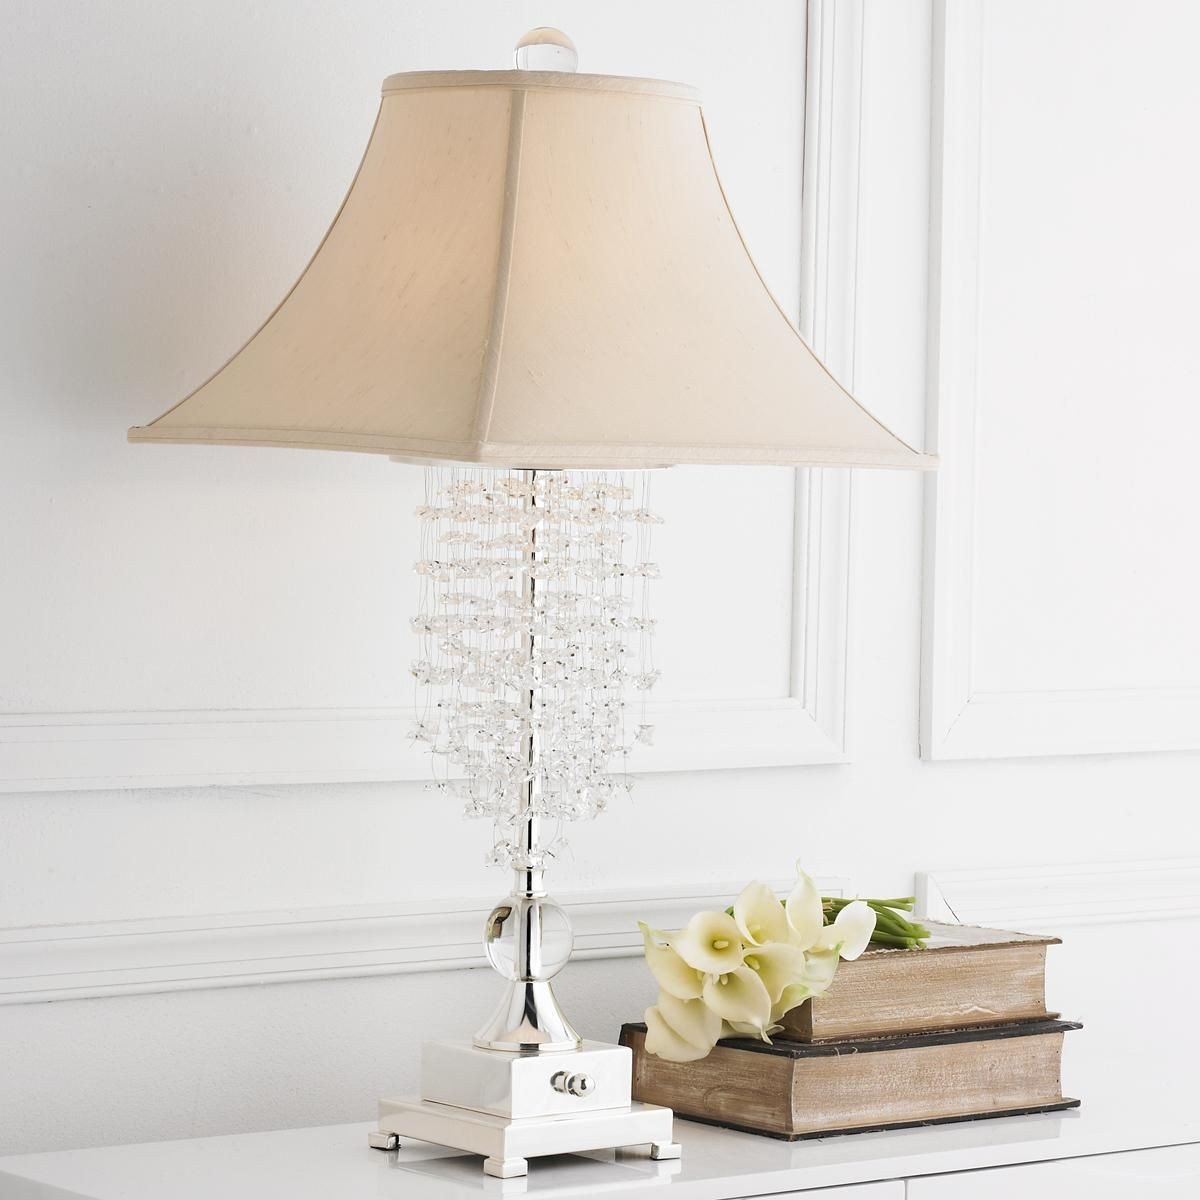 Twinkling Light for Bedroom Fresh when Shopping for A Lamp for Your Home the Number Of